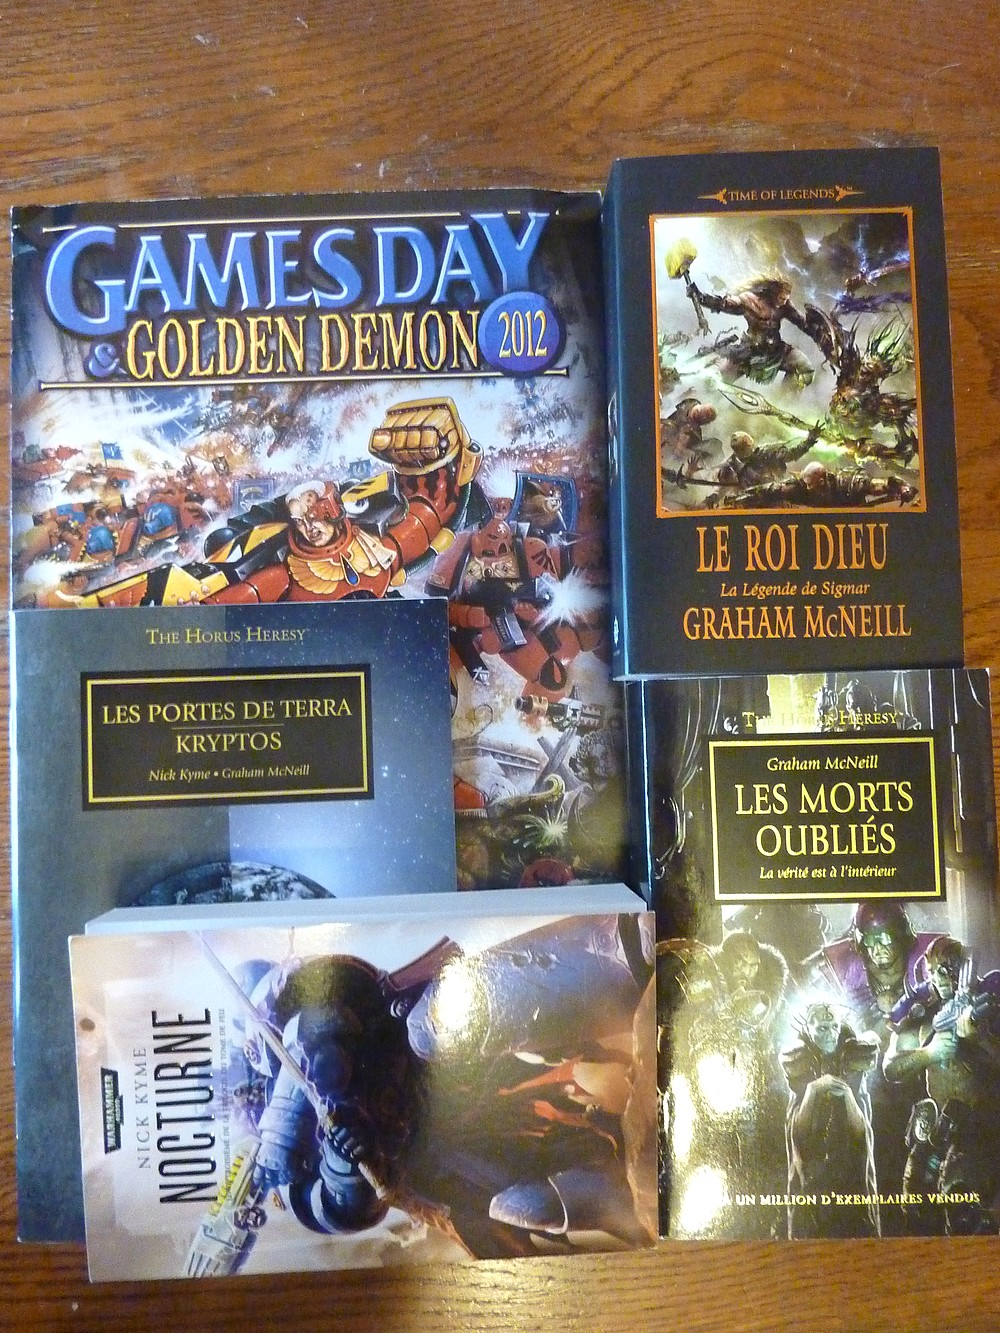 Games Day 2012 France (28 octobre) - Page 6 668321GD2012livres